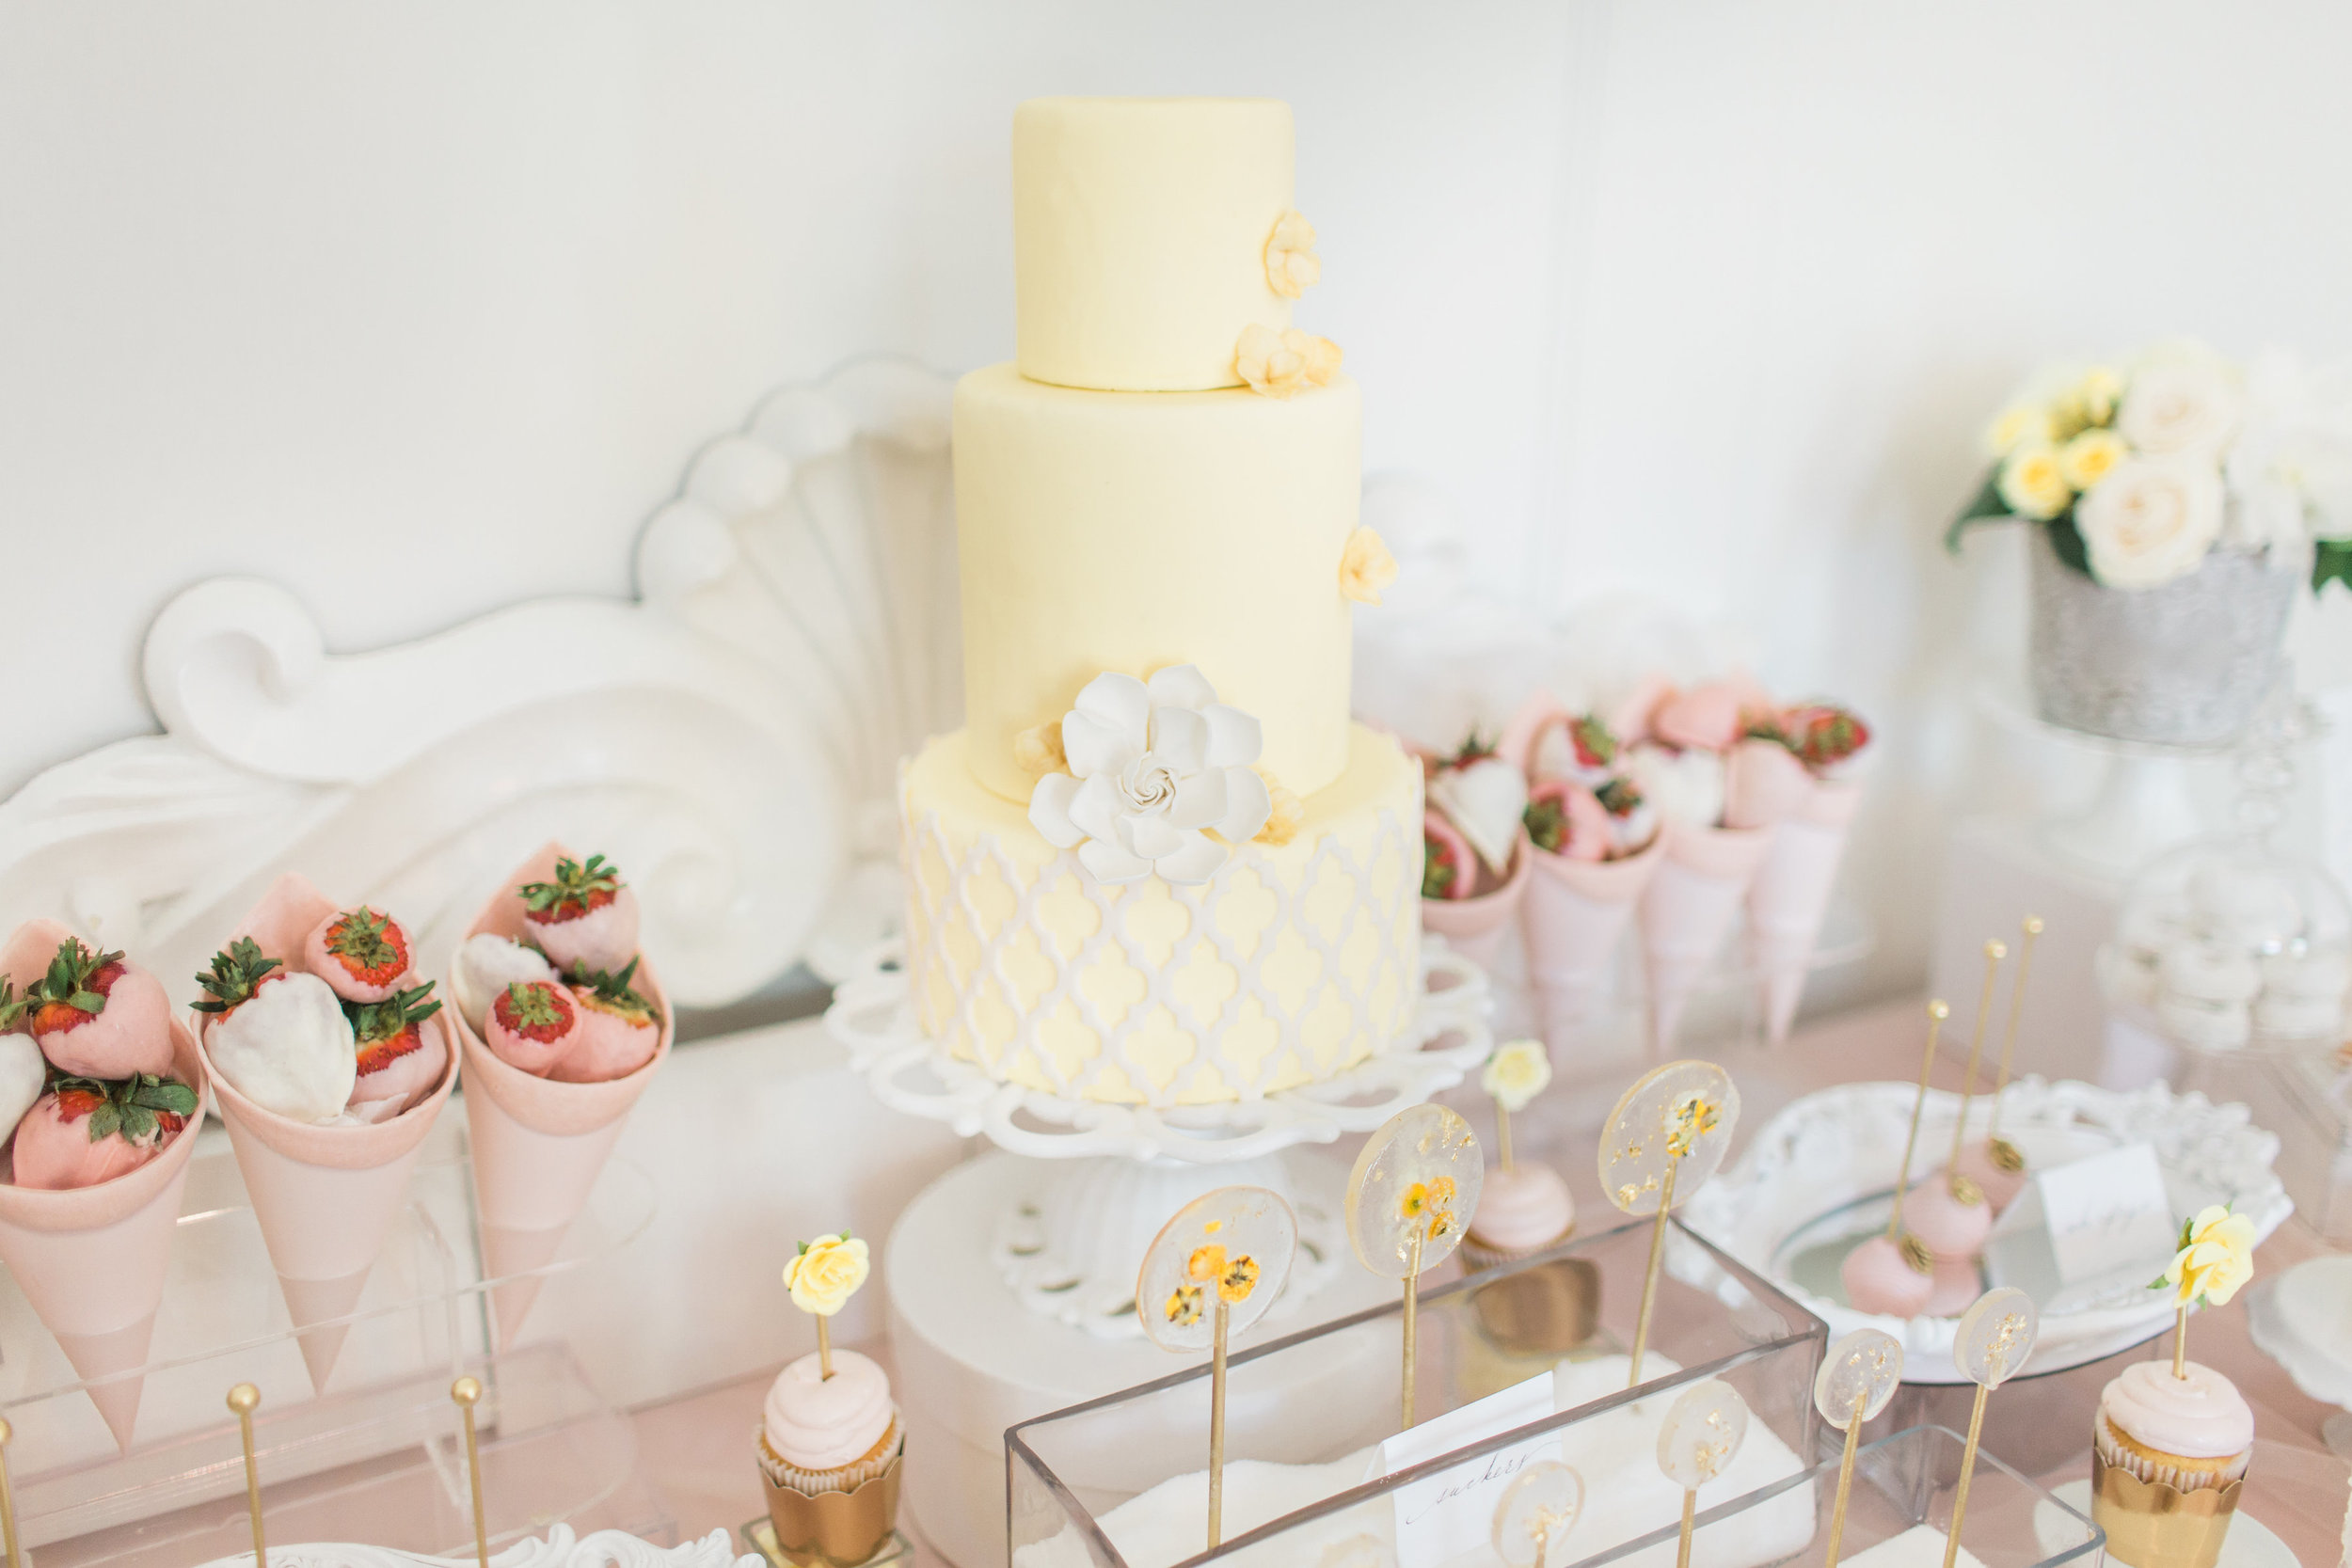 Styled Sweet Table Featured in Wedluxe